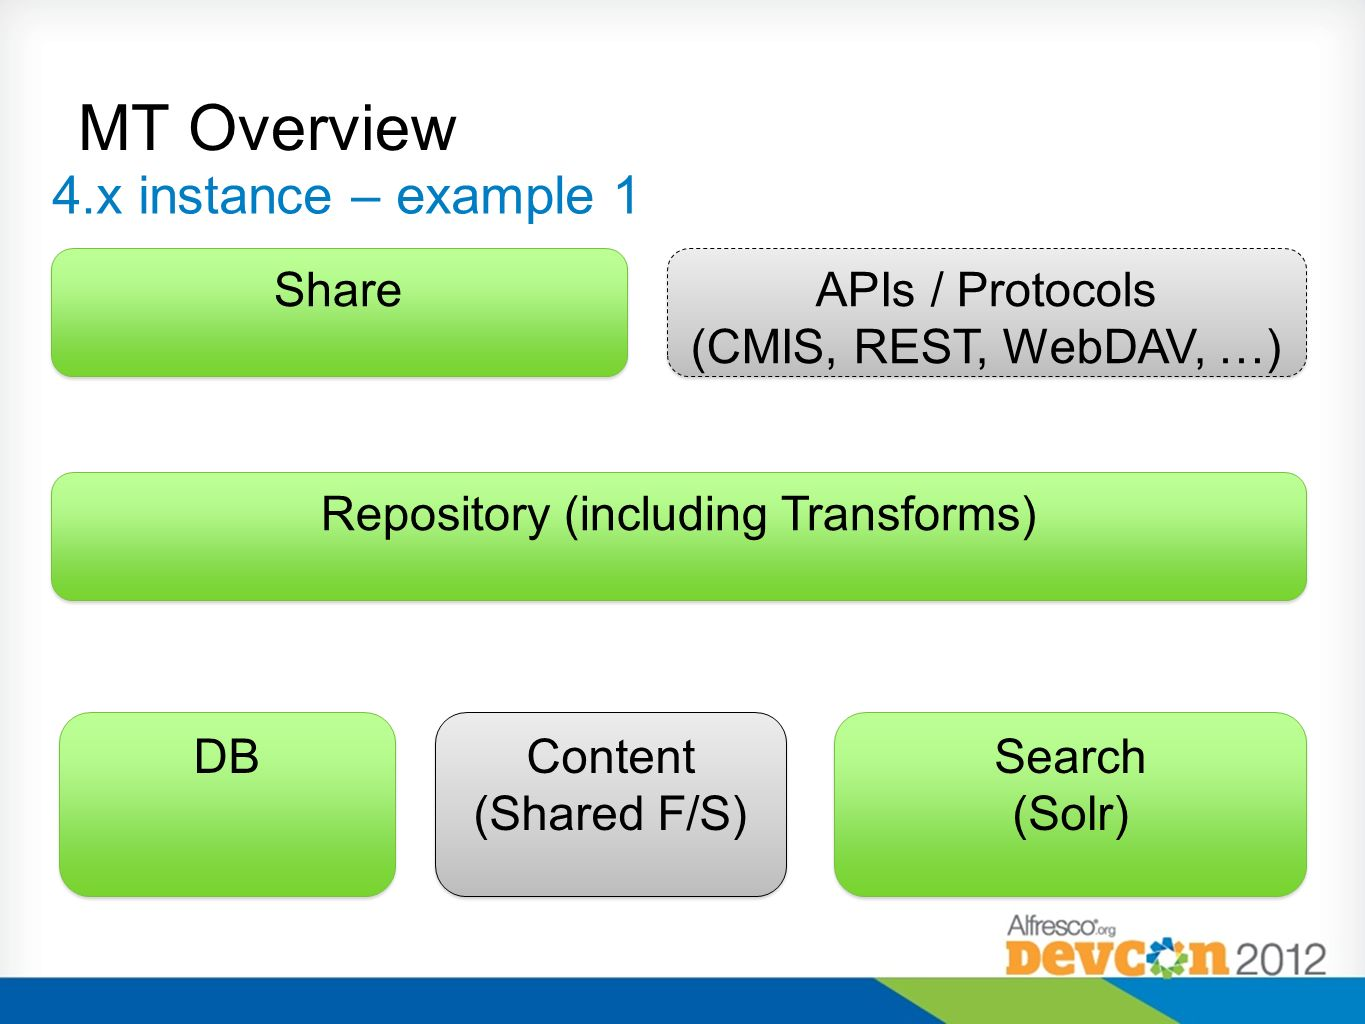 4.x instance – example 1 DB Content (Shared F/S) Content (Shared F/S) Search (Solr) Search (Solr) Share Repository (including Transforms) APIs / Proto